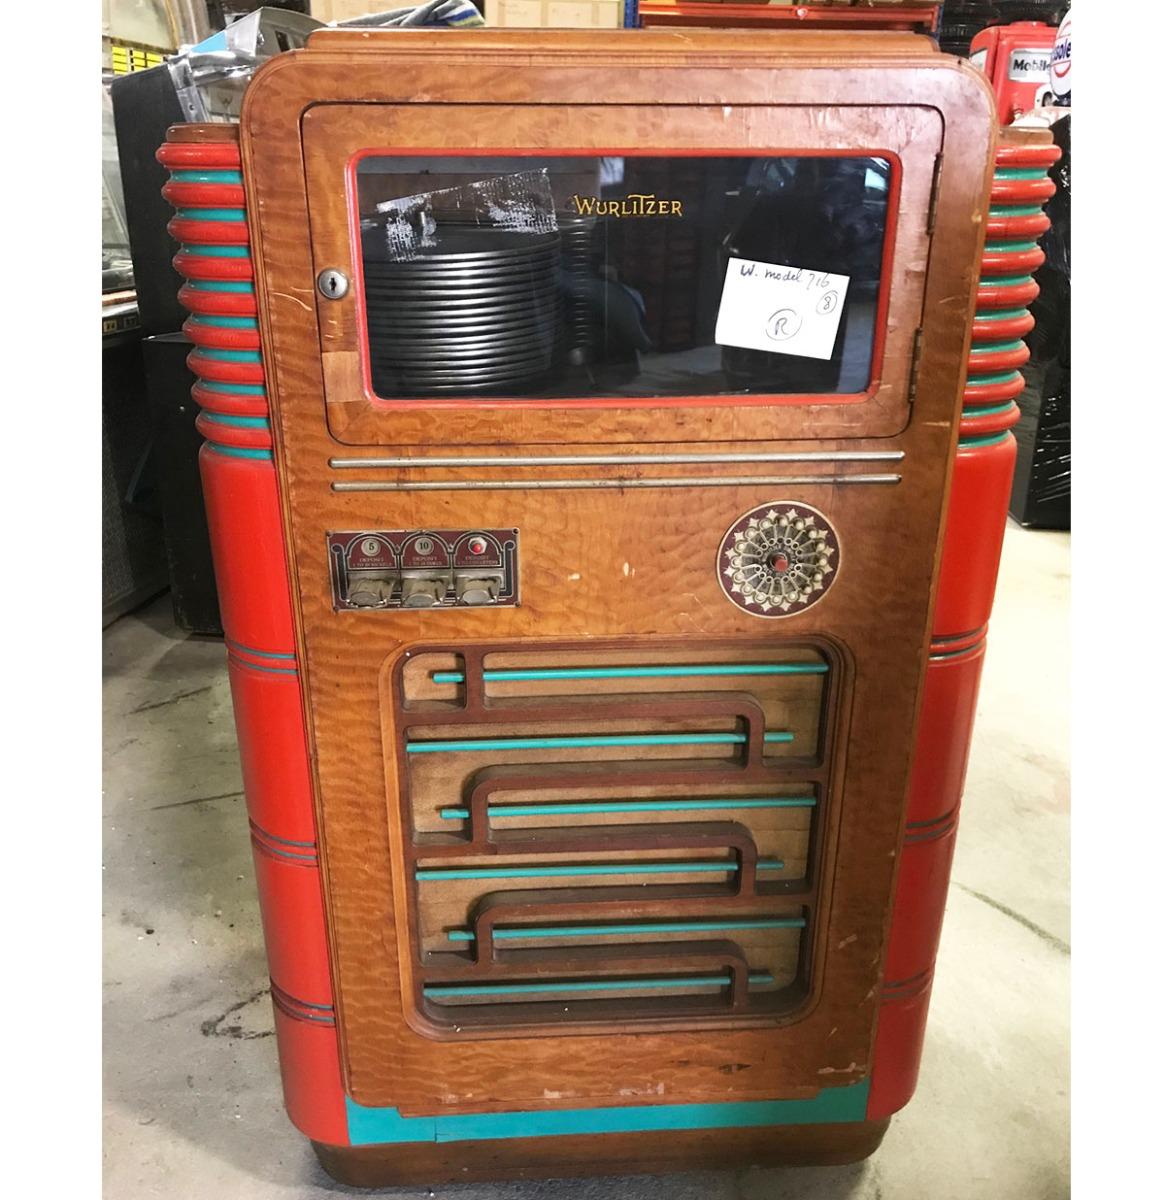 Wurlitzer 716 Jukebox - Origineel